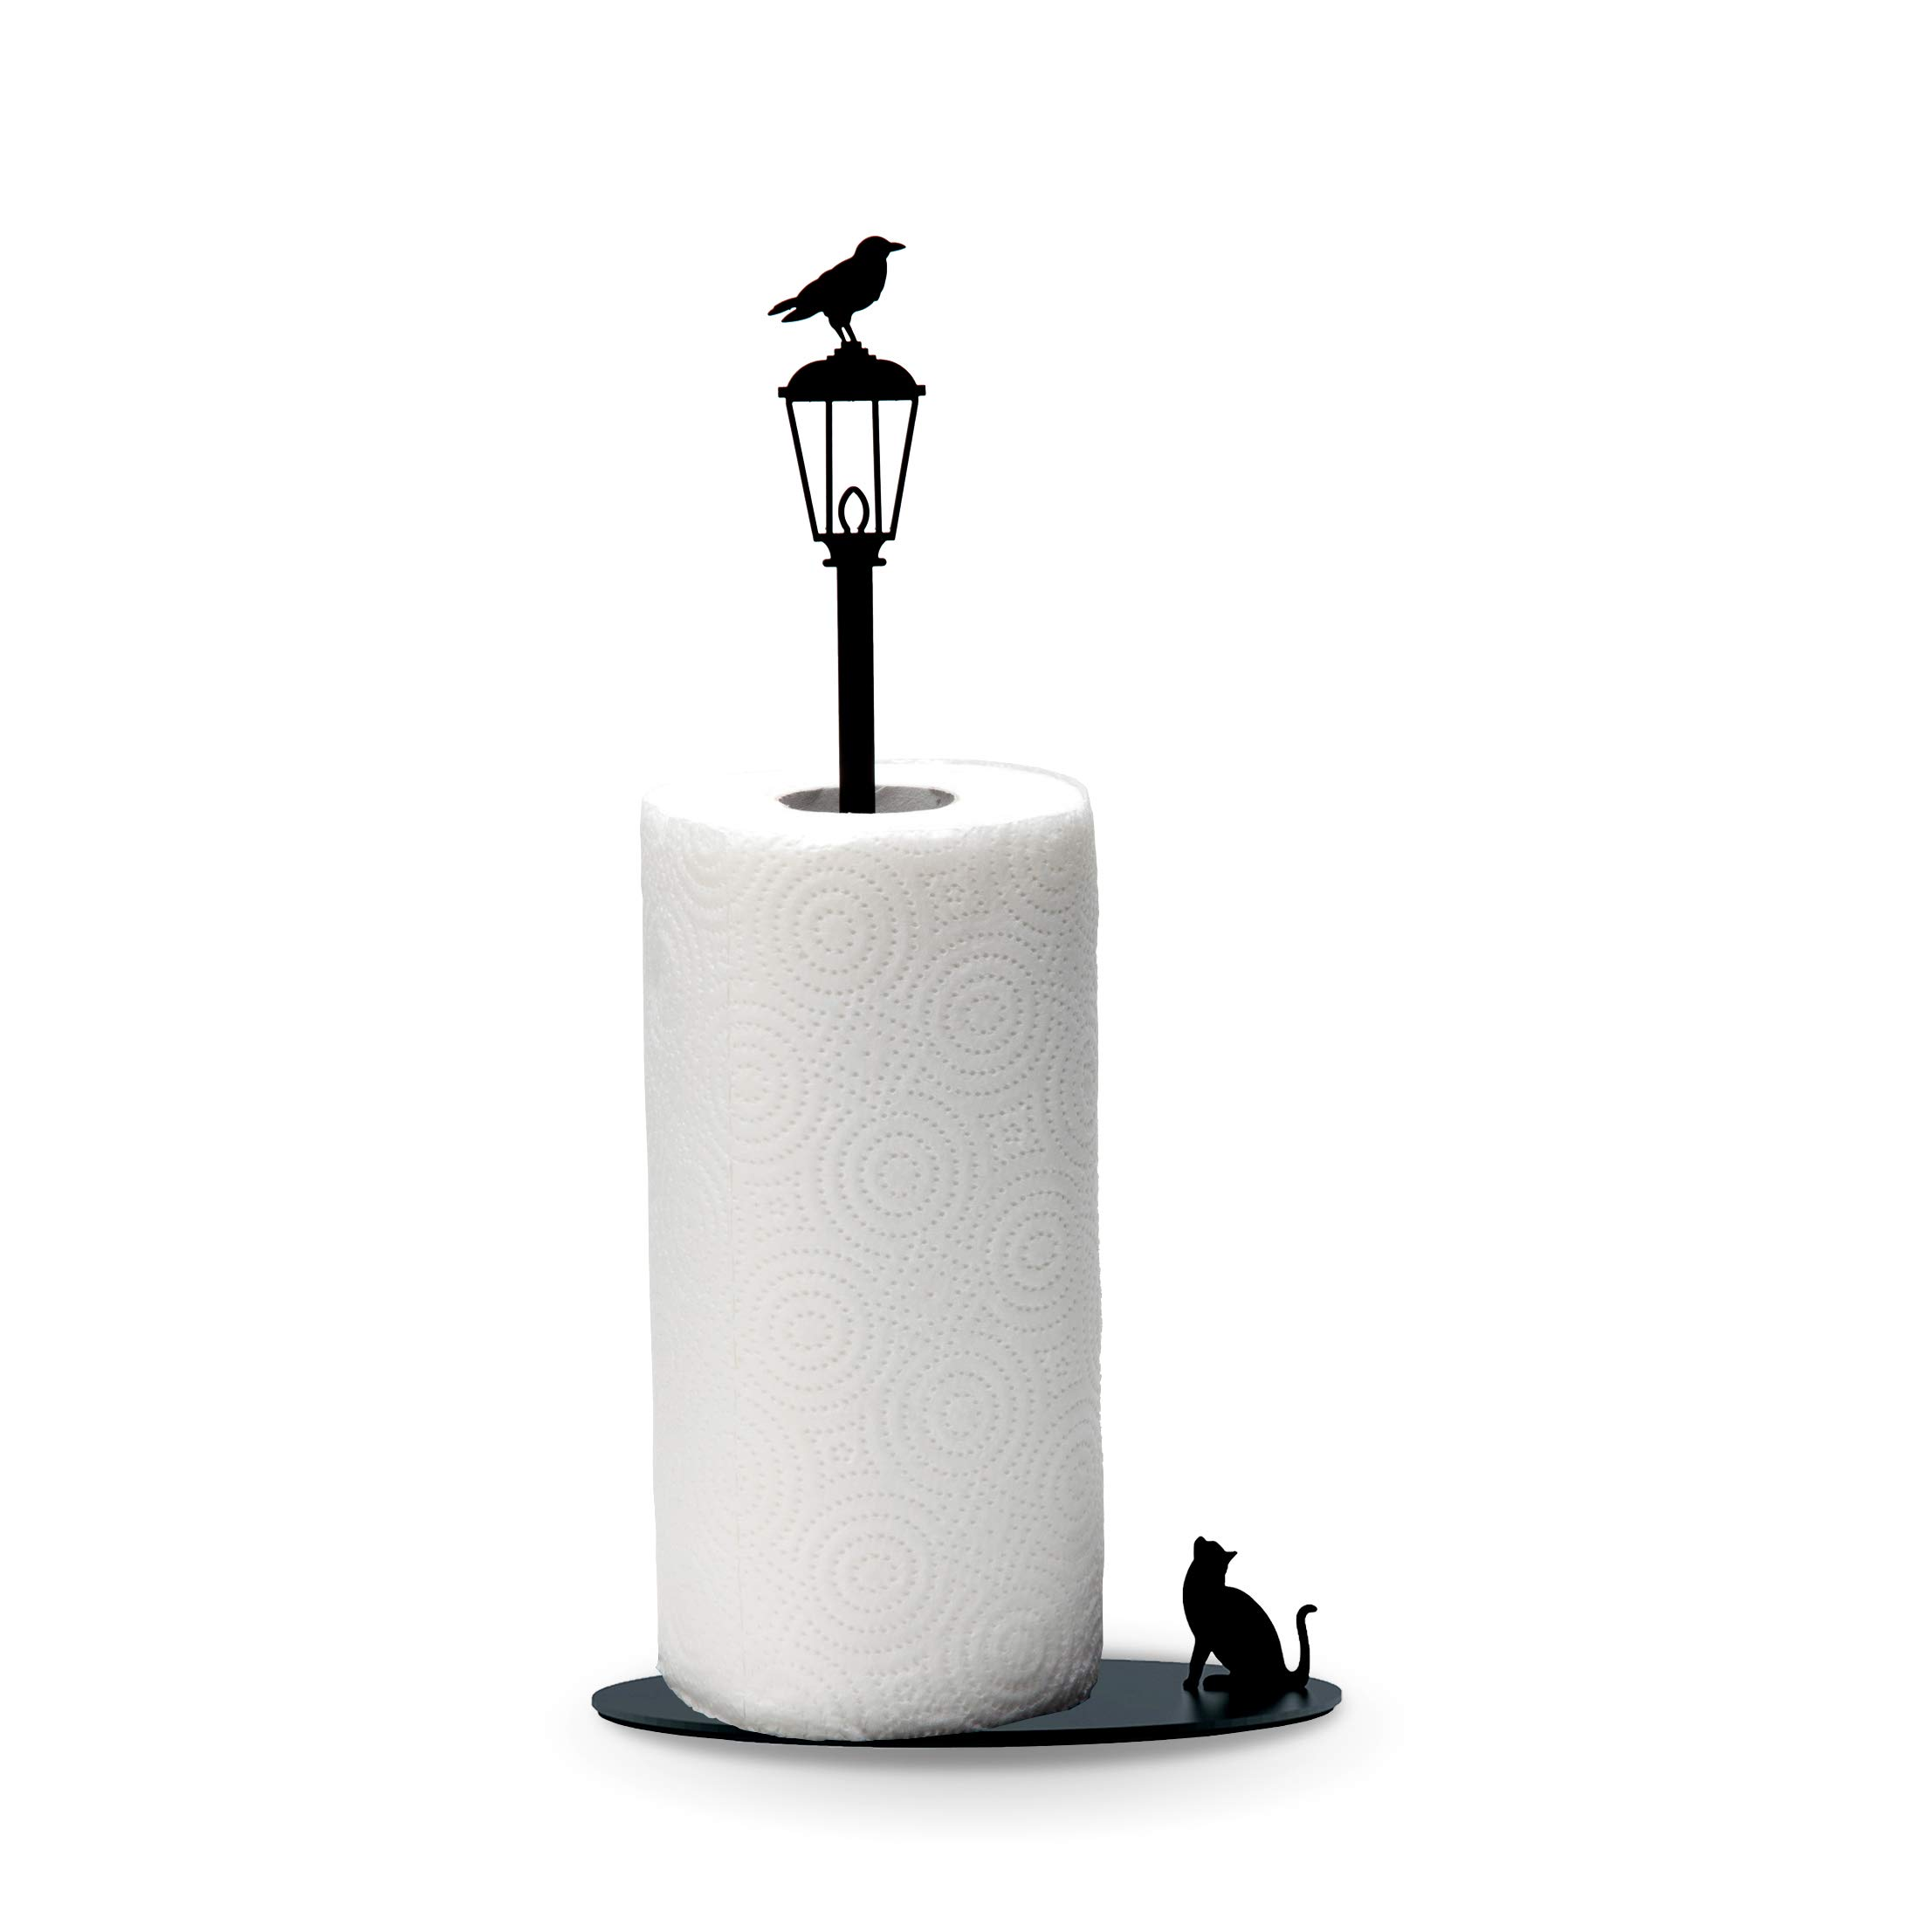 ARTORI Design Cat Vs. Crow - Kitchen paper towel holder by Artori Design